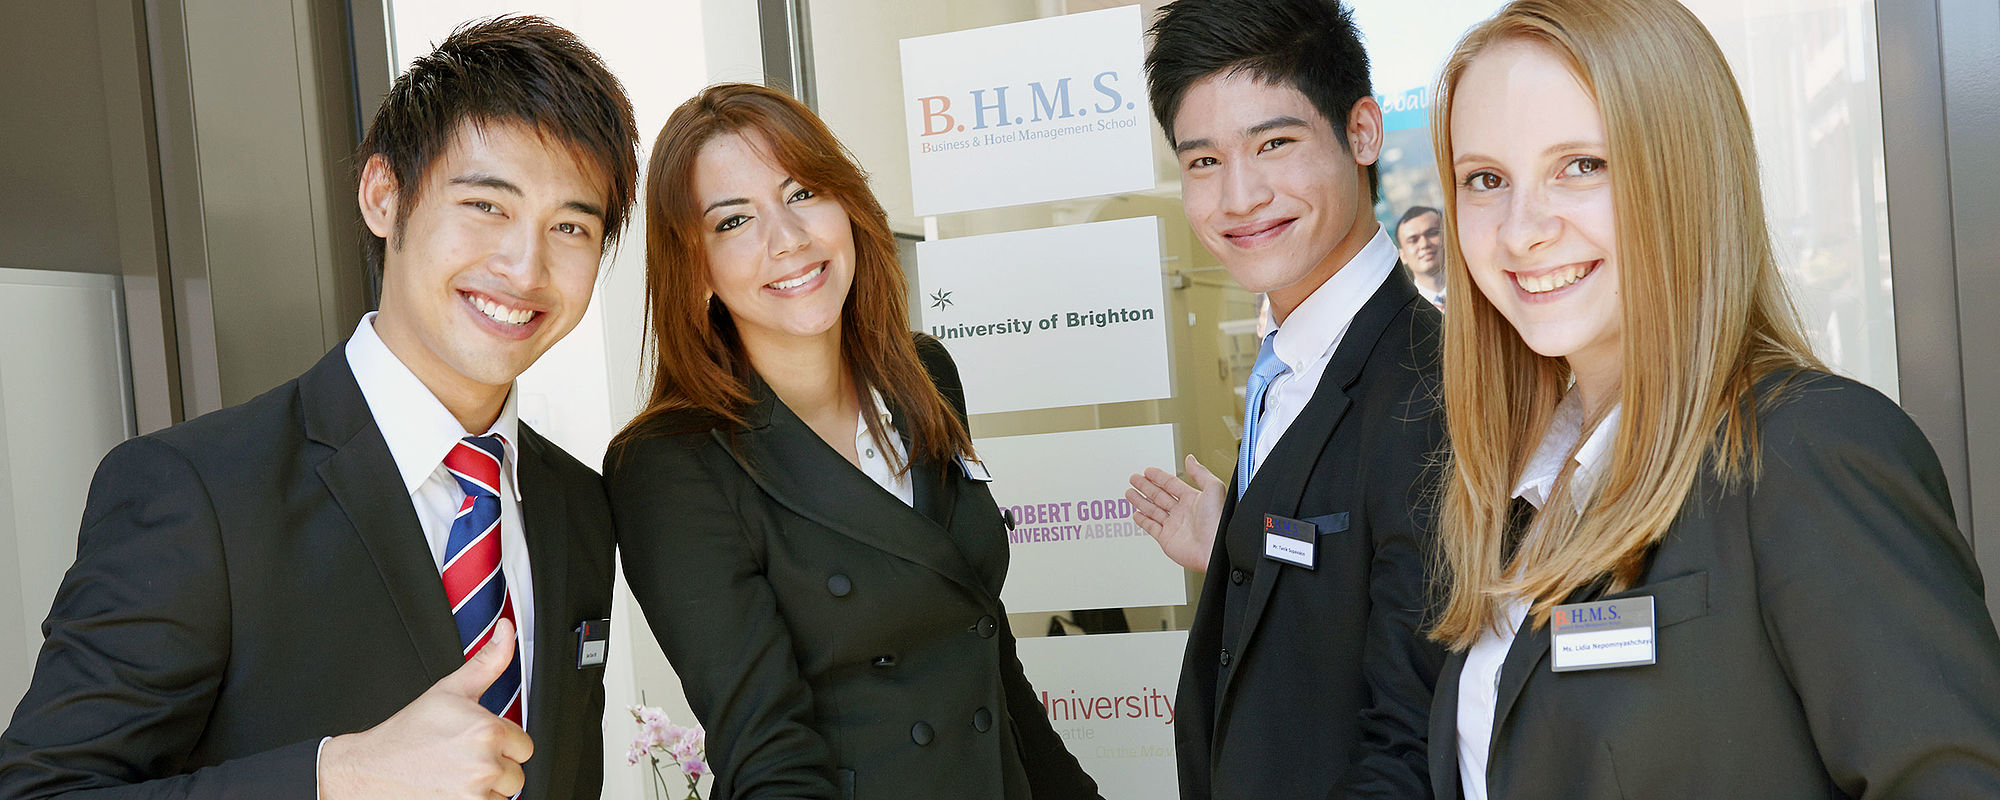 B.H.M.S. Business & Hotel Management School Lucerne, Switzerland